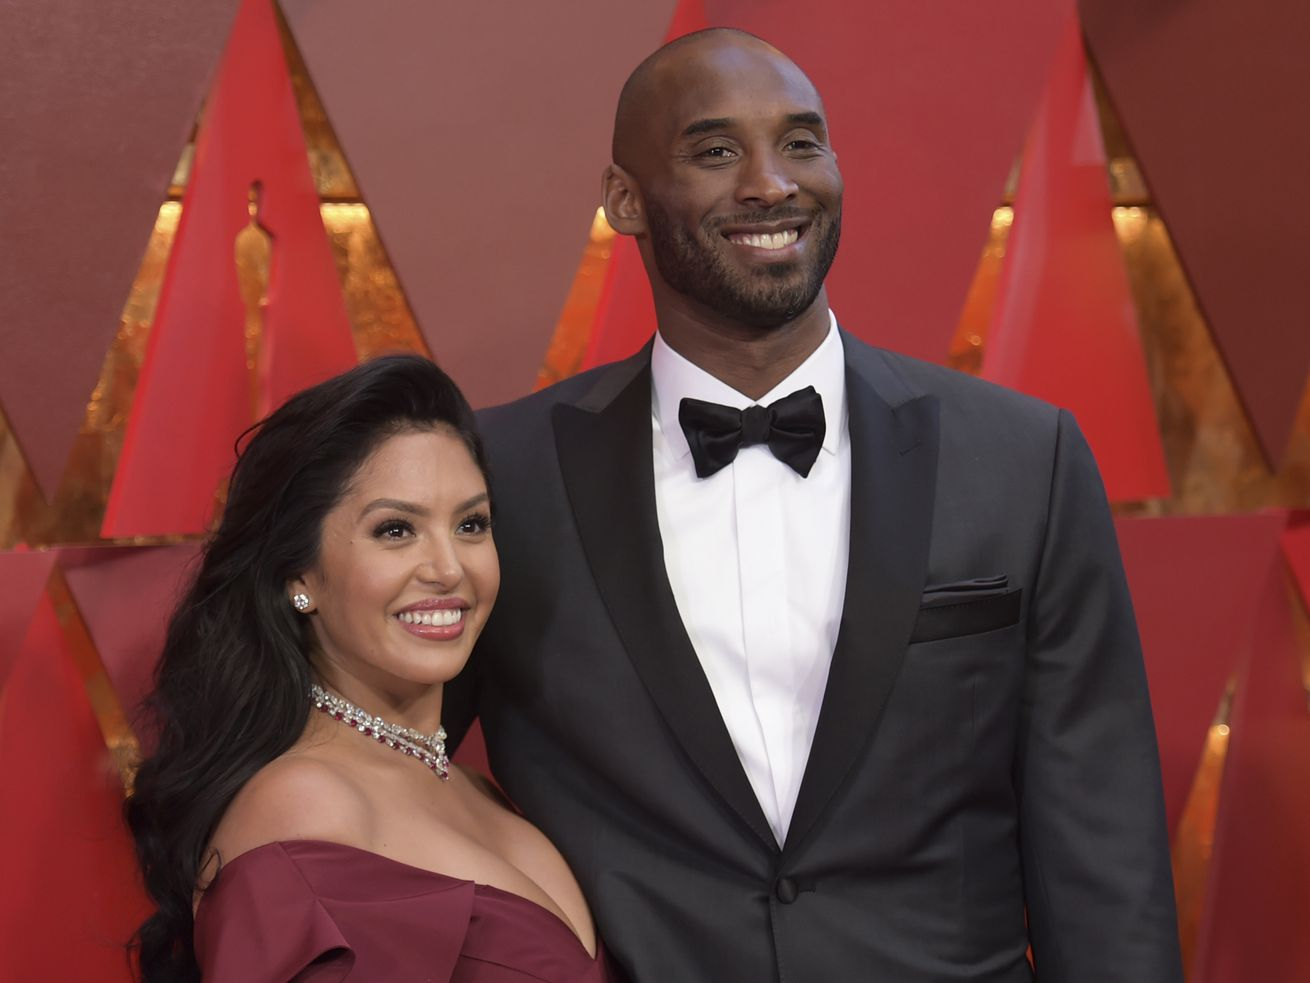 Vanessa Laine Bryant and Kobe Bryant arrive at the Oscars at the Dolby Theatre in Los Angeles in 2018.